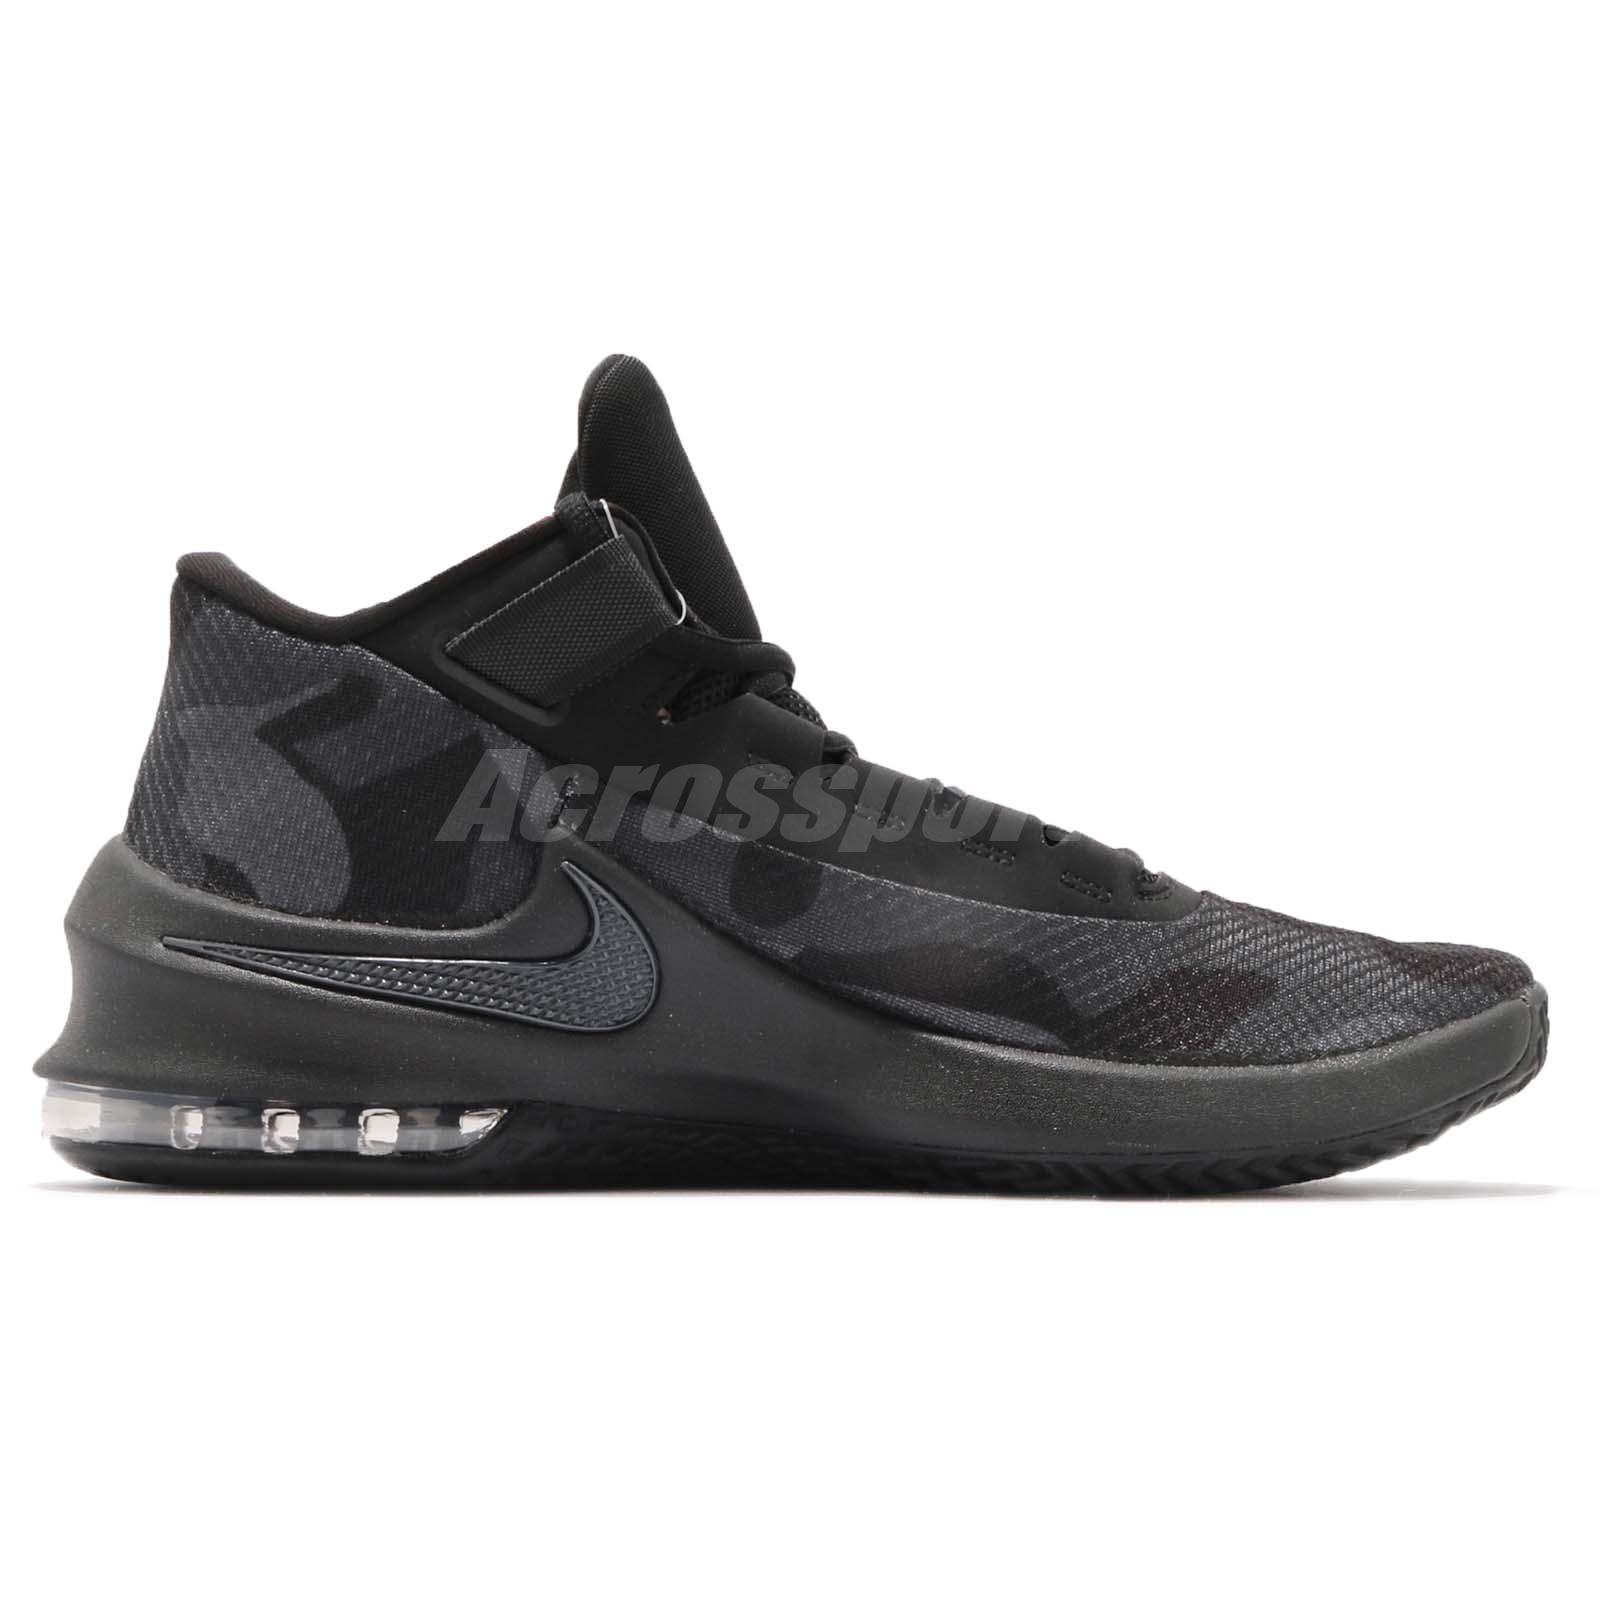 53d5f8531f8e Nike Air Max Infuriate 2 Mid PRM EP Black Grey Camo Basketball Shoes ...